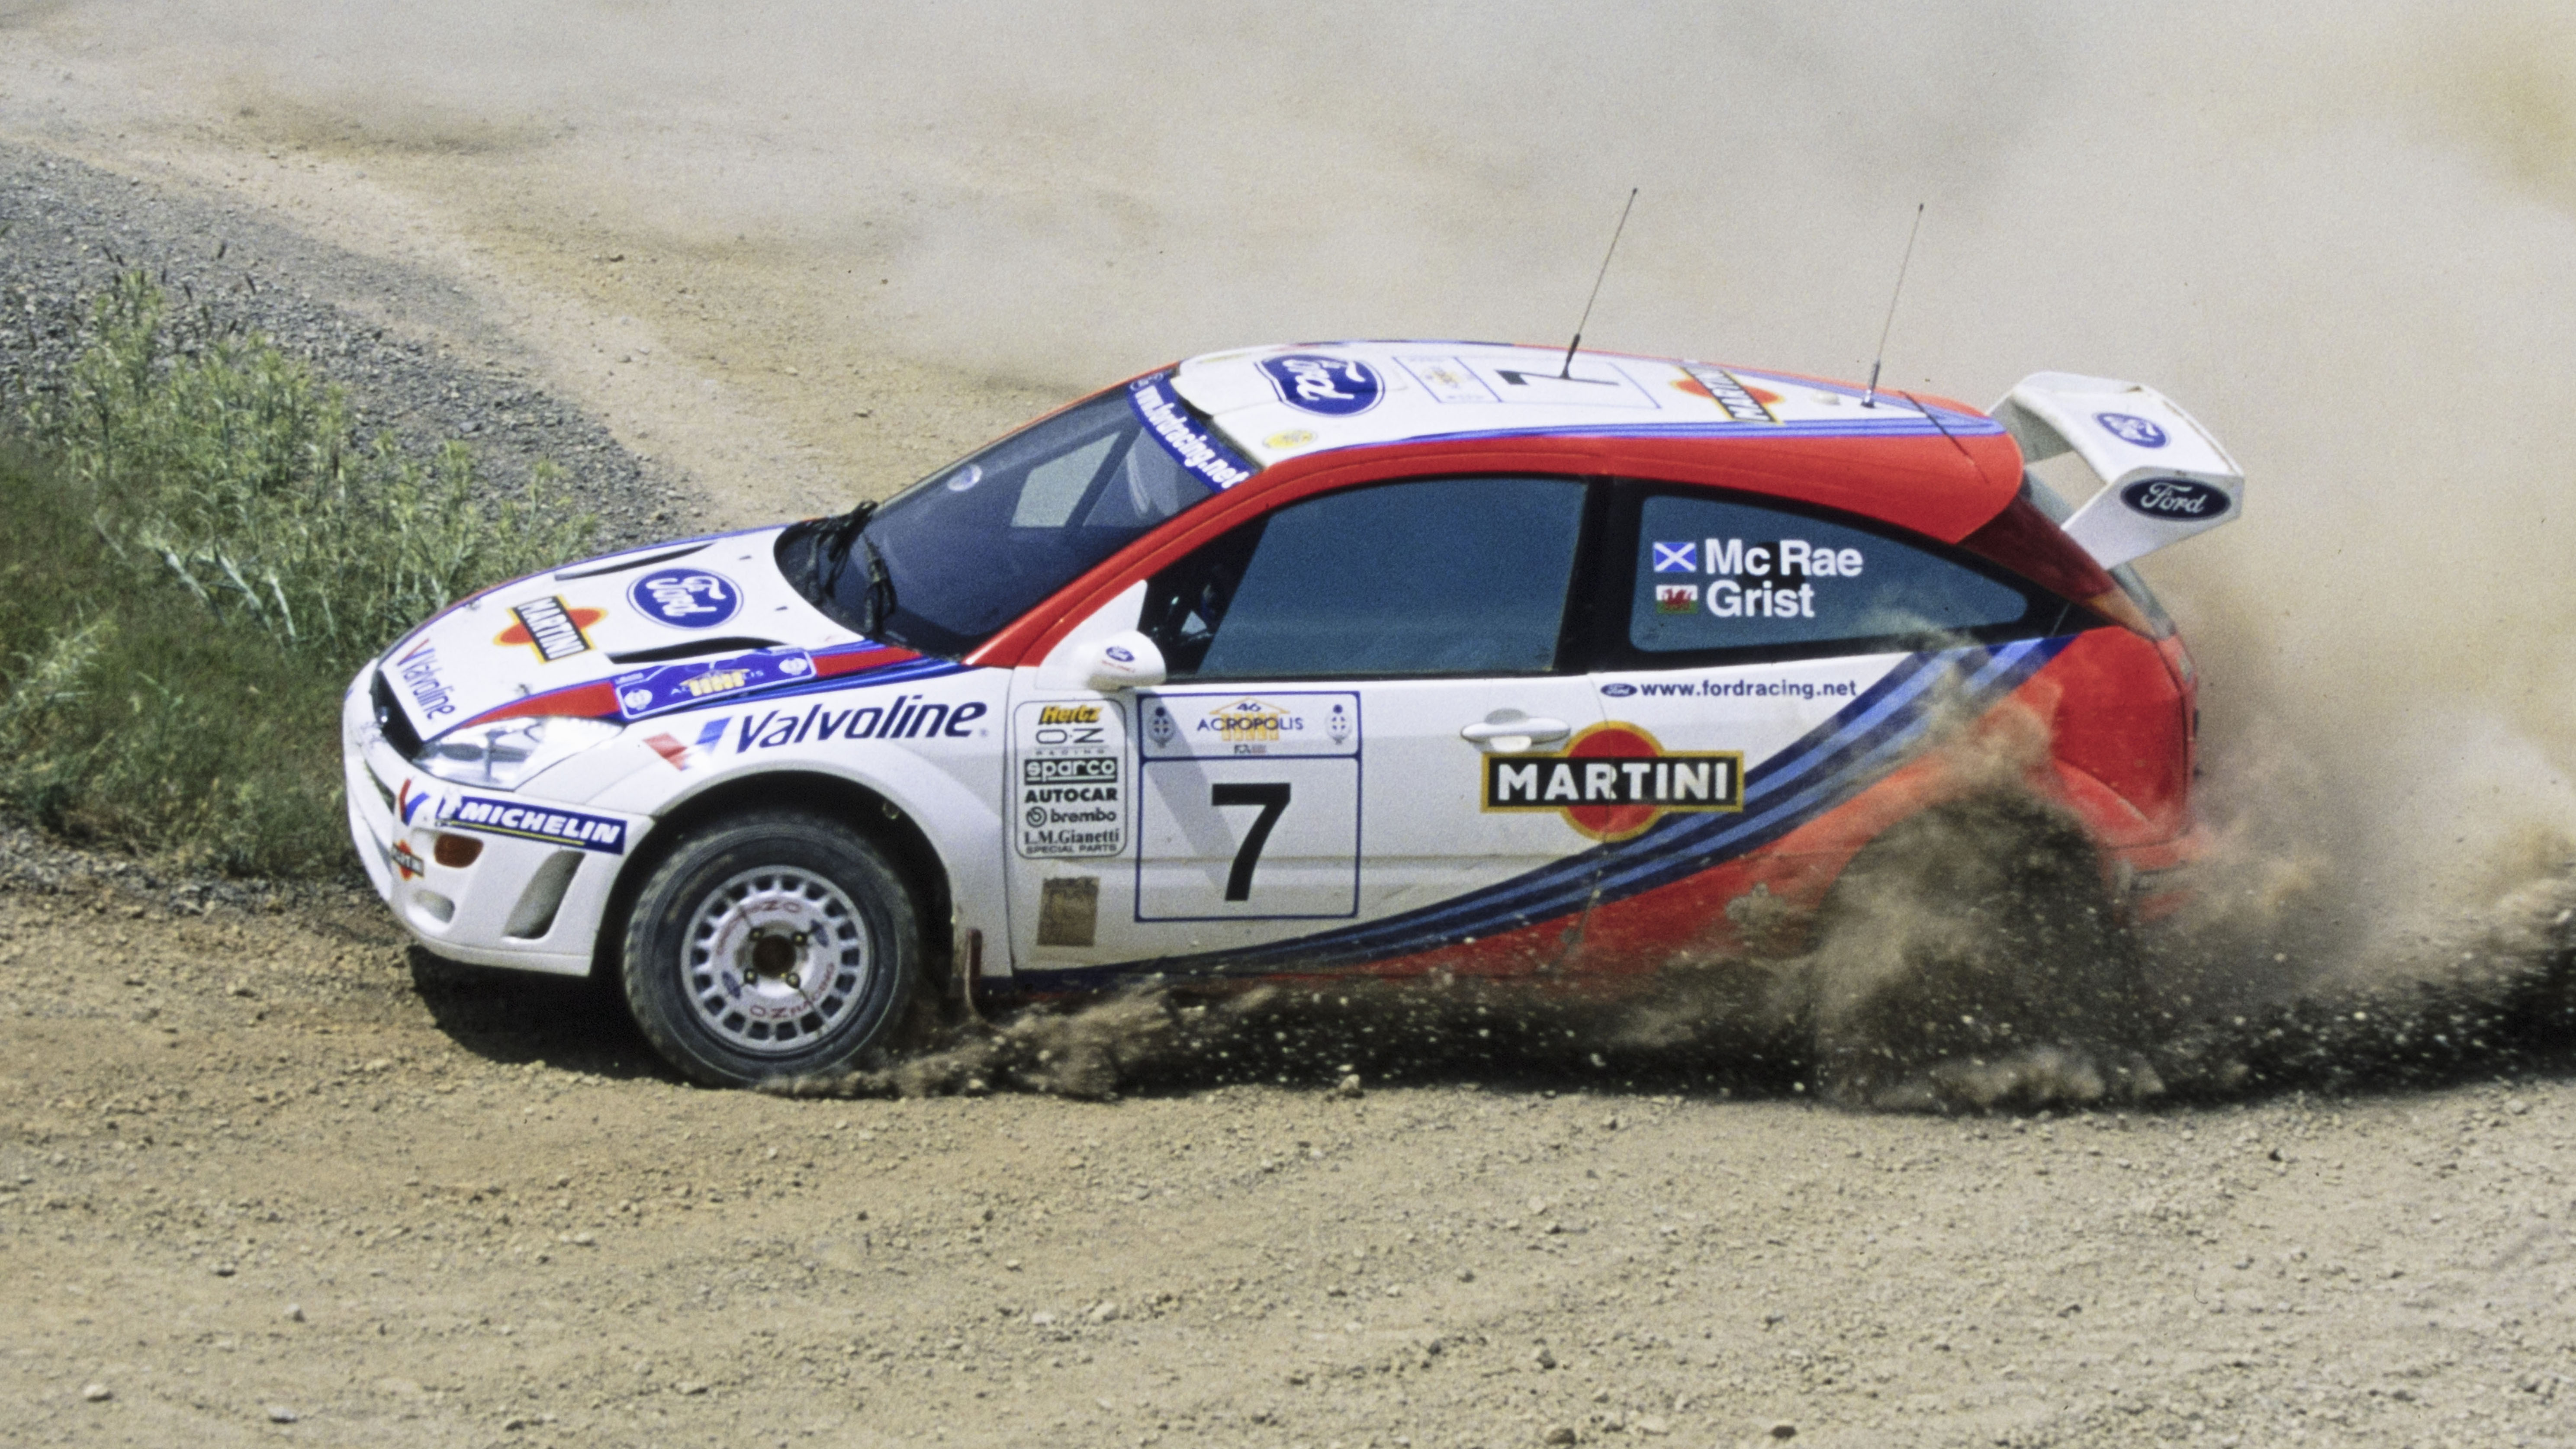 Buy this Ford Focus WRC raced by Colin McRae | Top Gear